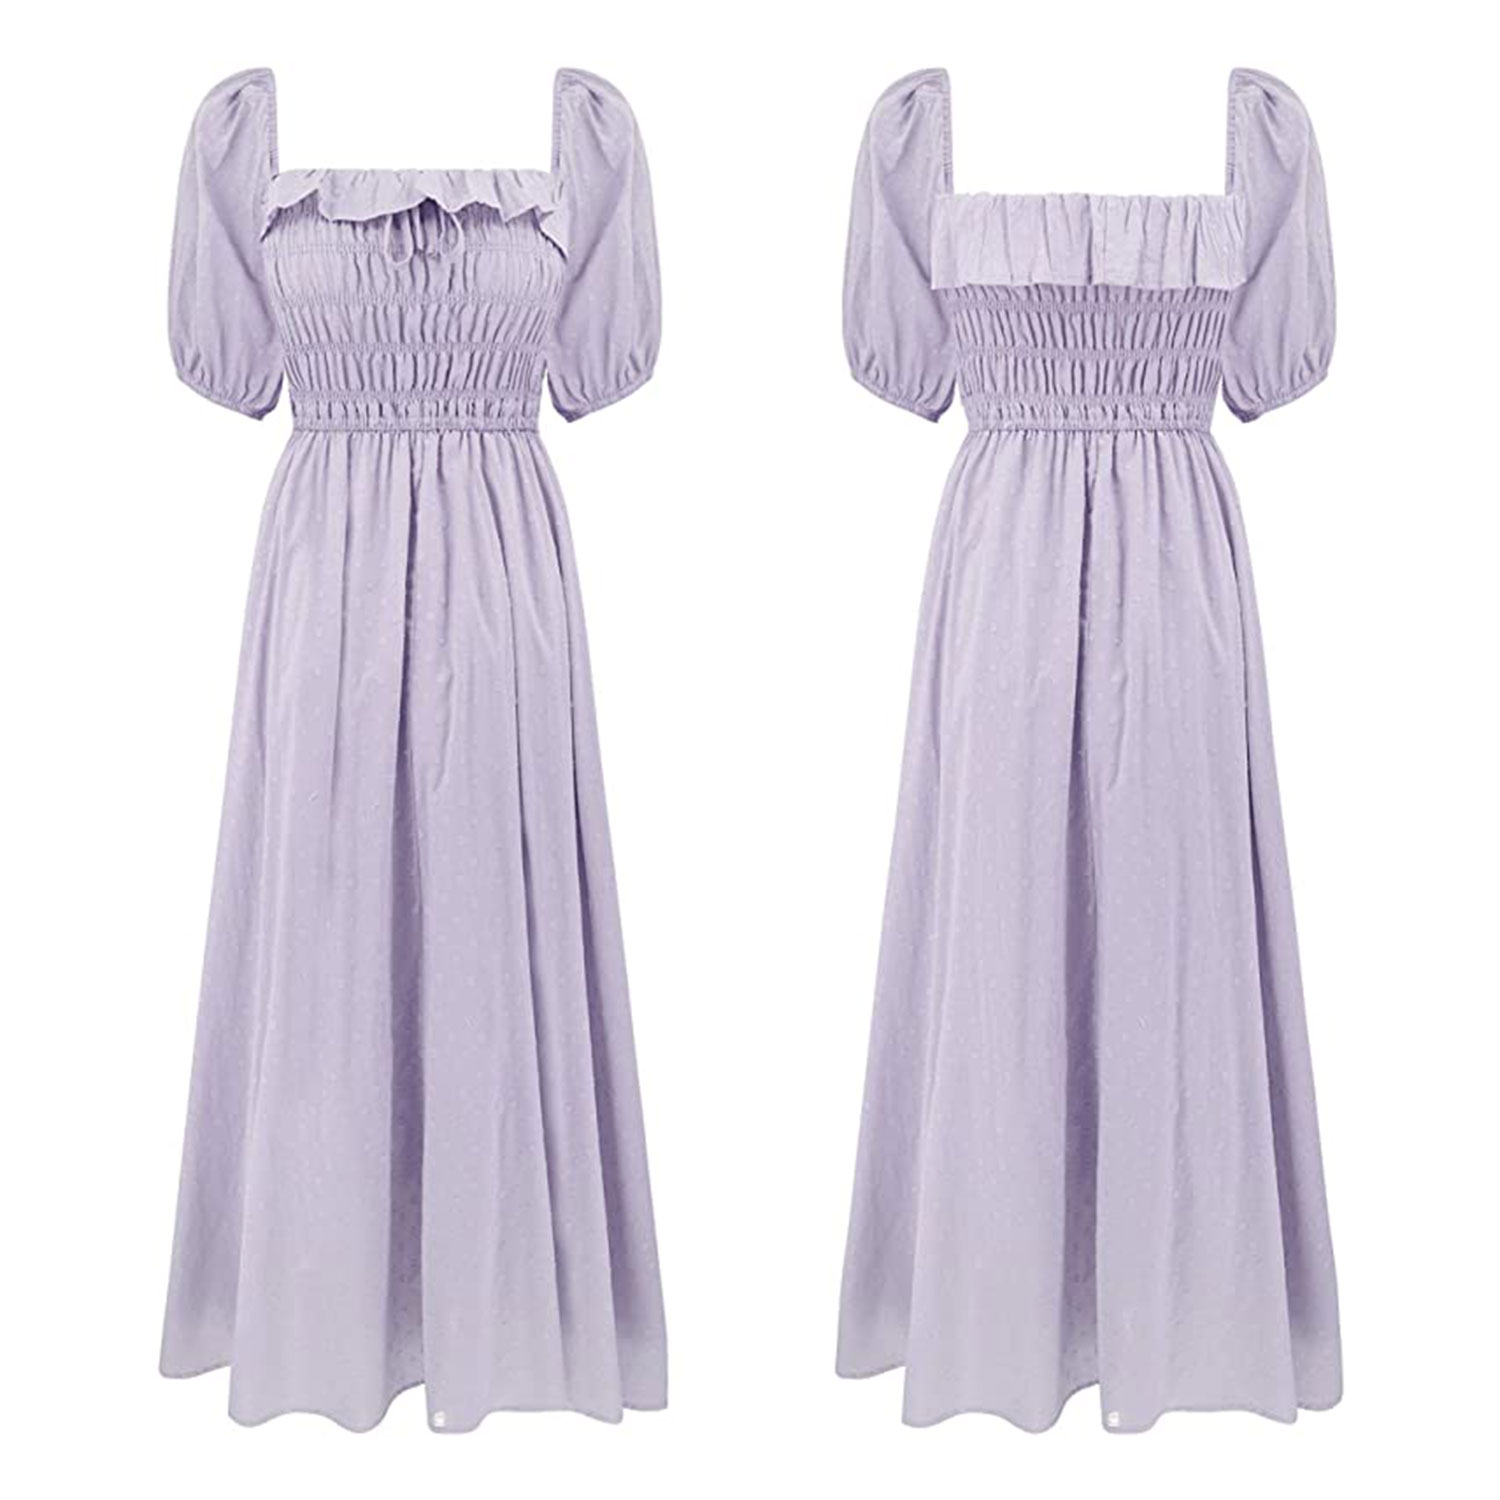 R.Vivimos Women Summer Half Sleeve Cotton Ruffled Vintage Elegant Backless A Line Flowy Long Dresses